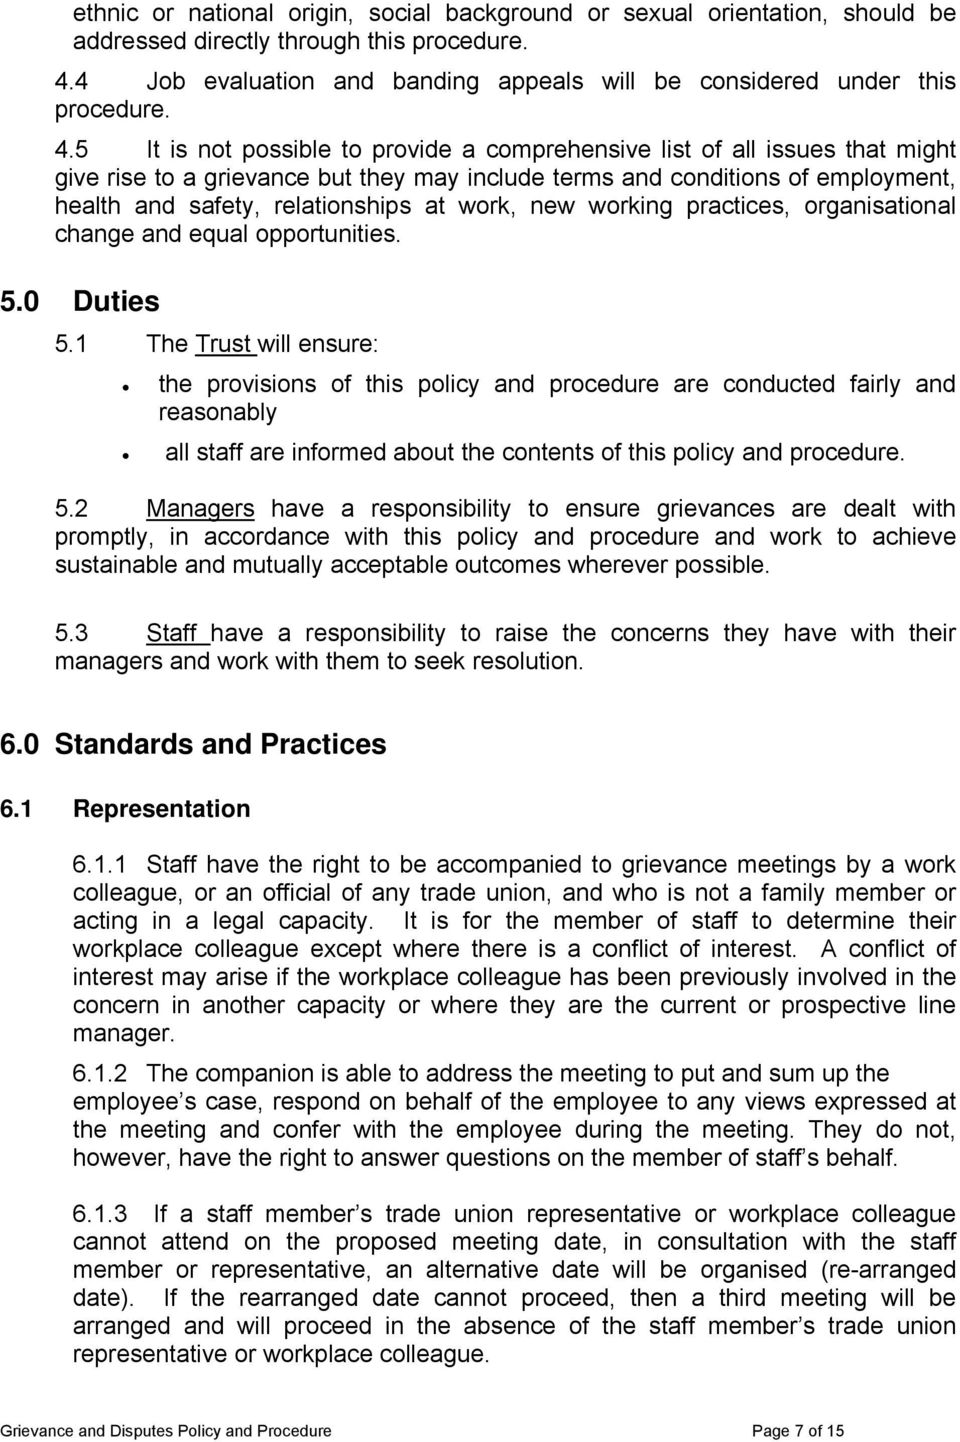 work, new working practices, organisational change and equal opportunities. 5.0 Duties 5.